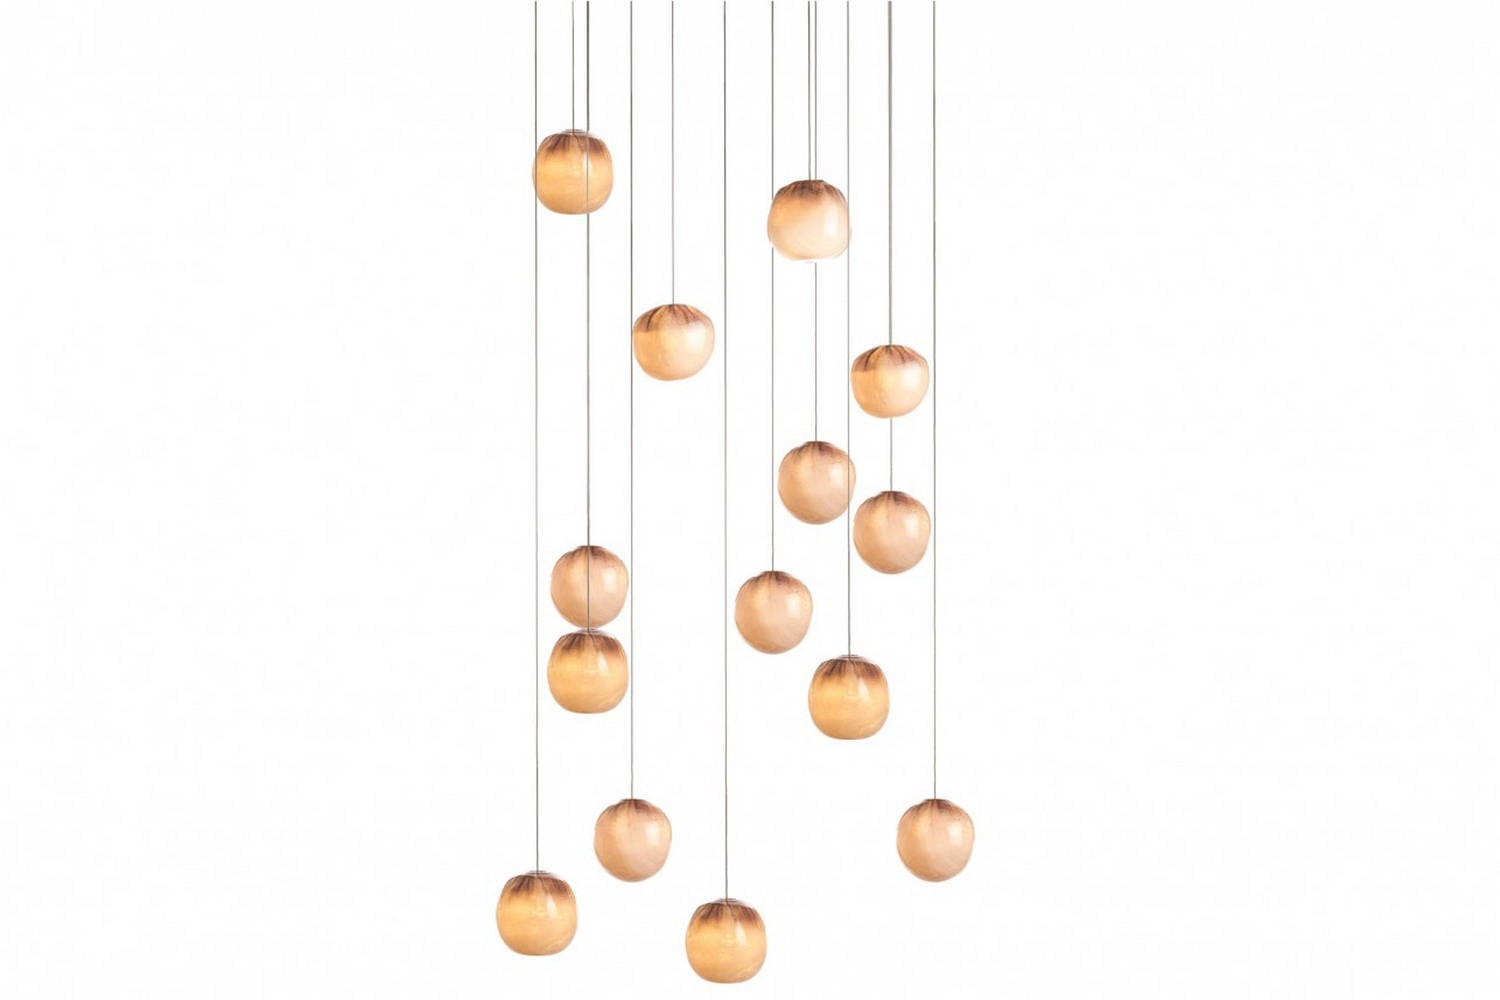 84.14 Suspension Lamp by Omer Arbel for Bocci